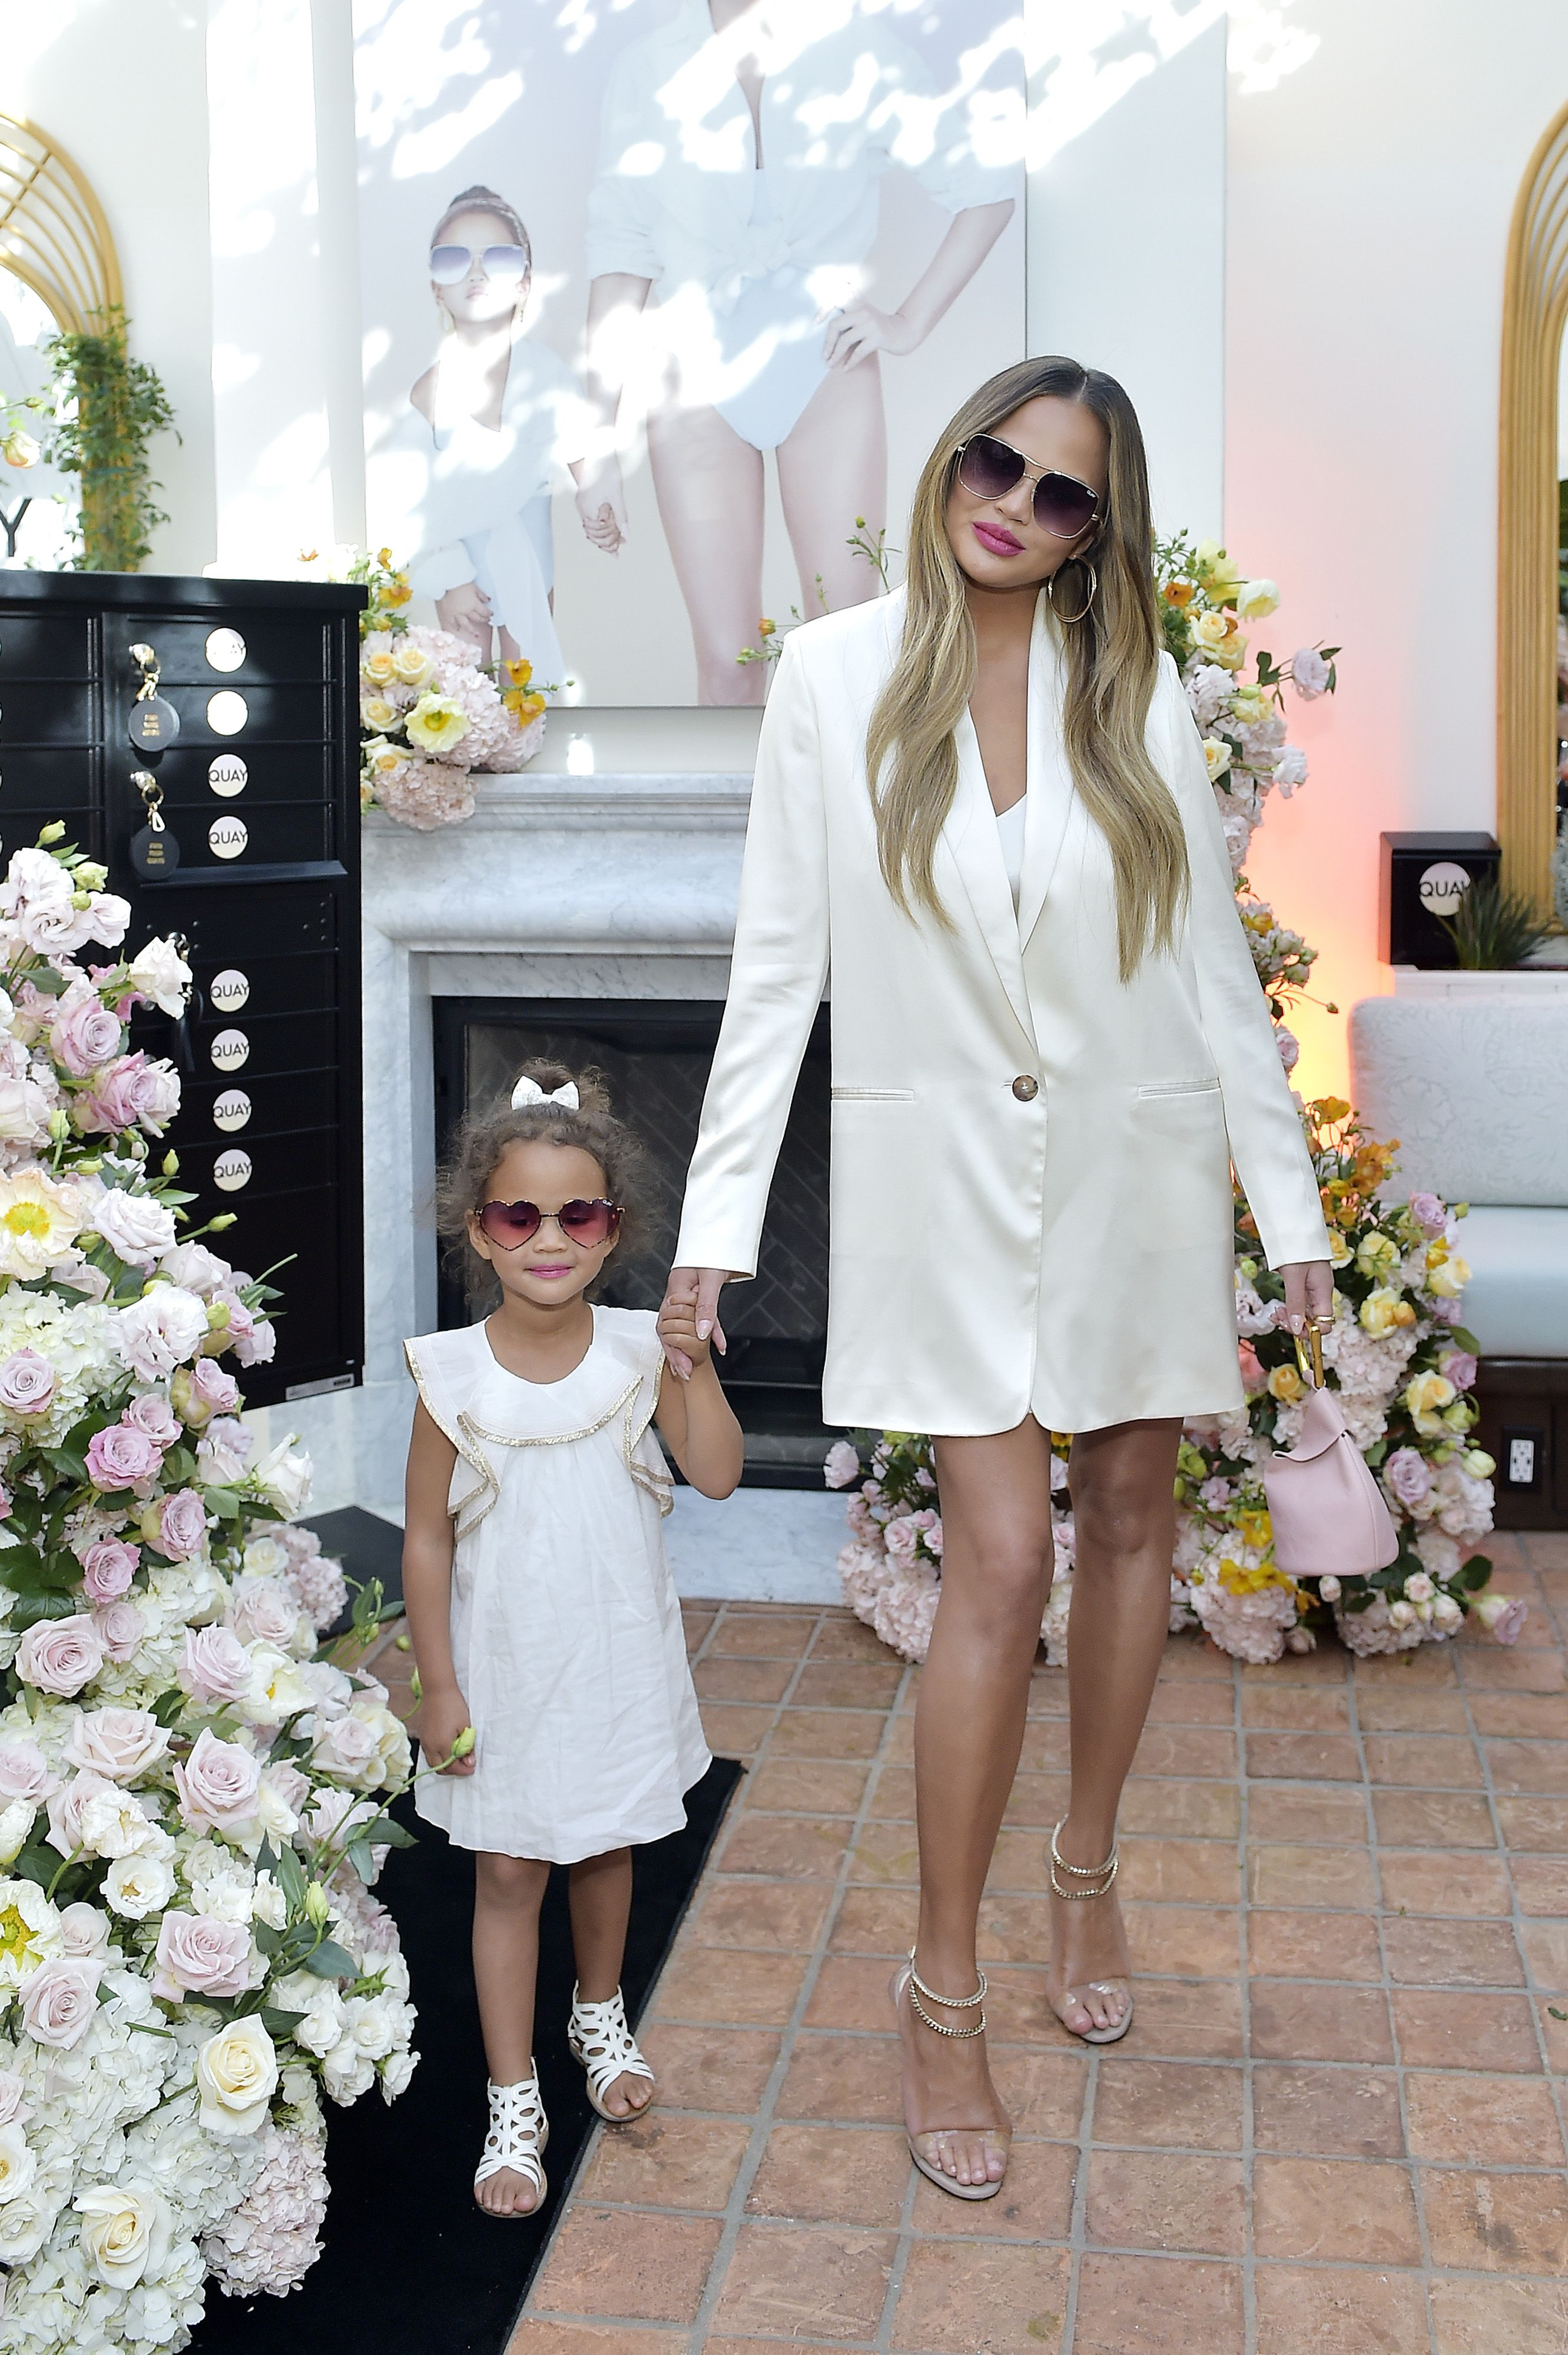 Chrissy Teigen's Daughter Demands a Haircut From Jen Atkin for $5